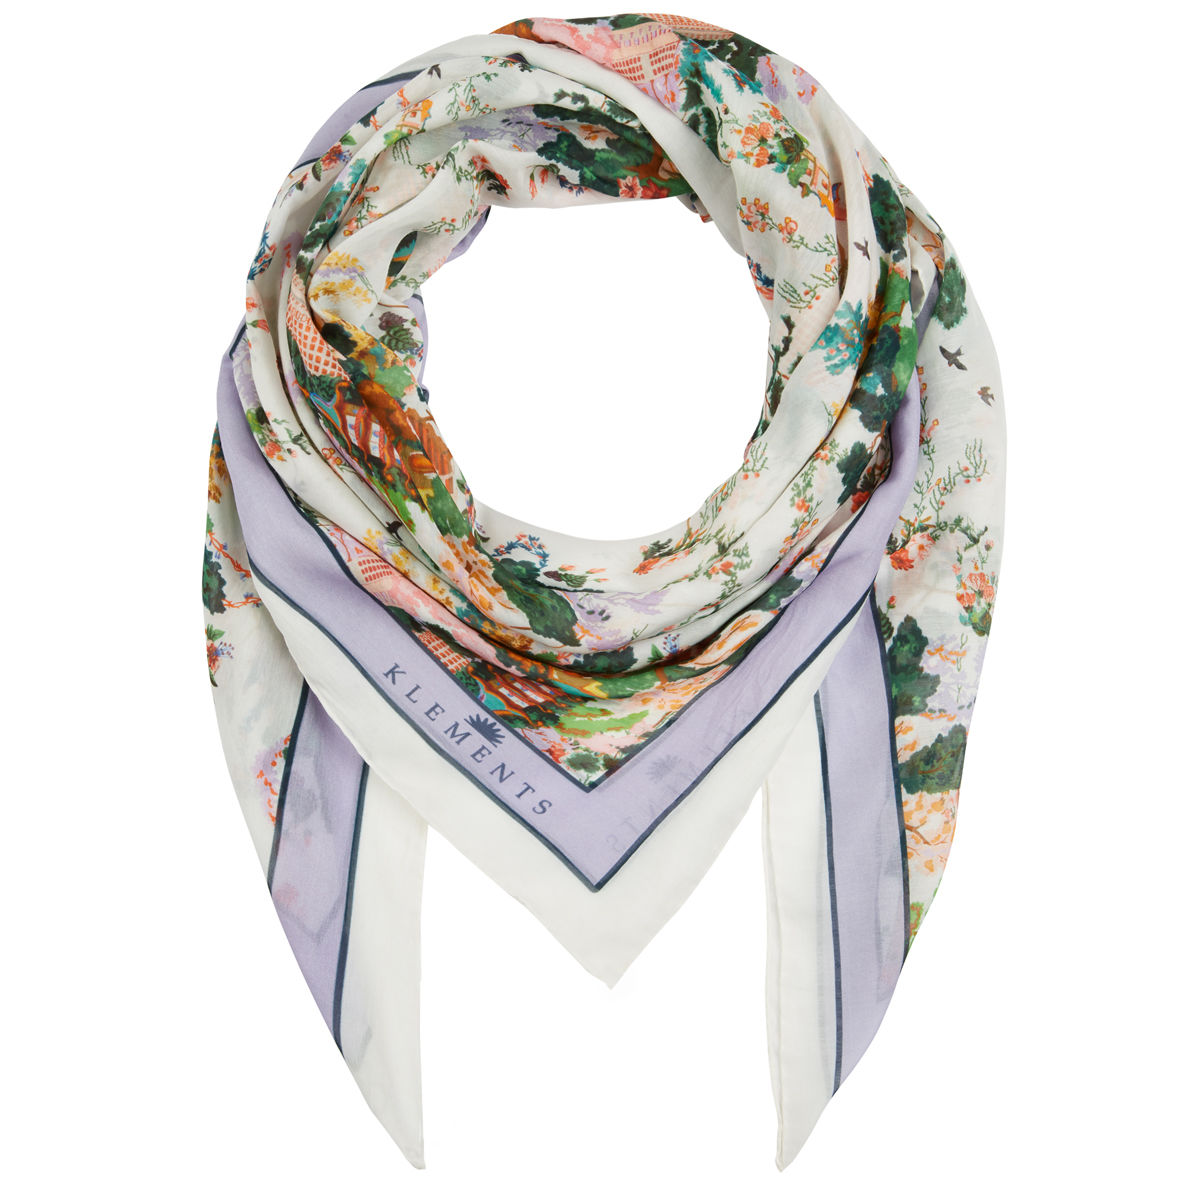 Large scarf in Urban Chinoiserie (white) print - product images  of